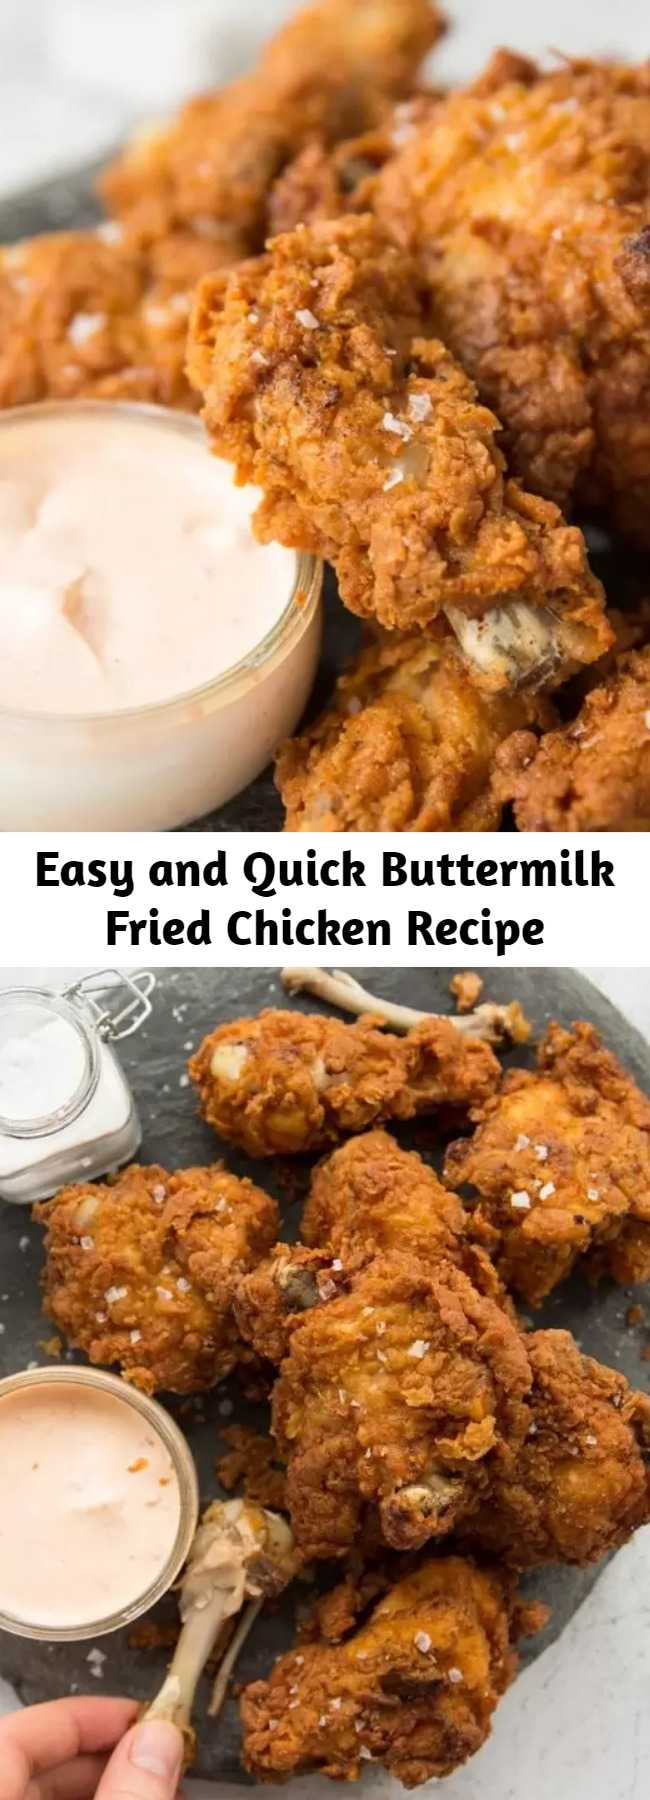 Easy and Quick Buttermilk Fried Chicken Recipe - This Buttermilk Fried Chicken recipe is packed with all the tips you need to make EXTRA crispy fried chicken. Once you give this a go, you won't have it any other way! #chicken #friedchicken #deepfriedchicken #buttermilk #buttermilkfriedchicken